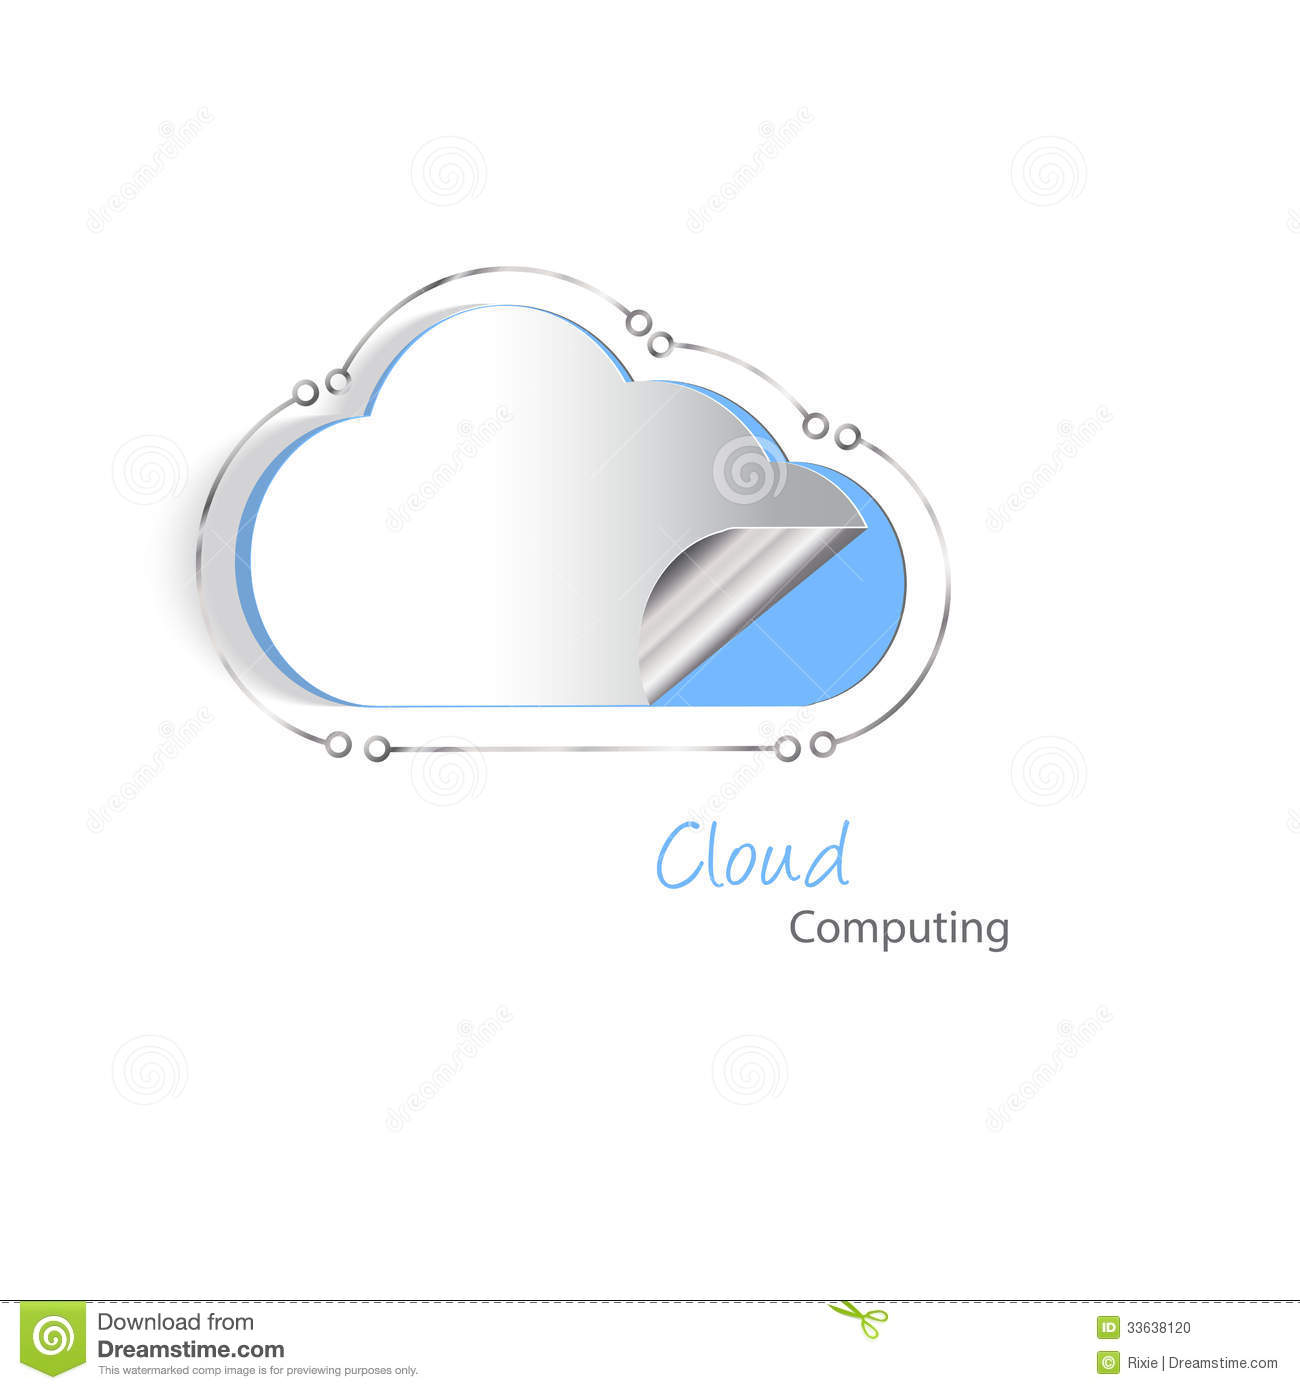 Clearing the Fog from Cloud Computing - Paper - A.T. Kearney